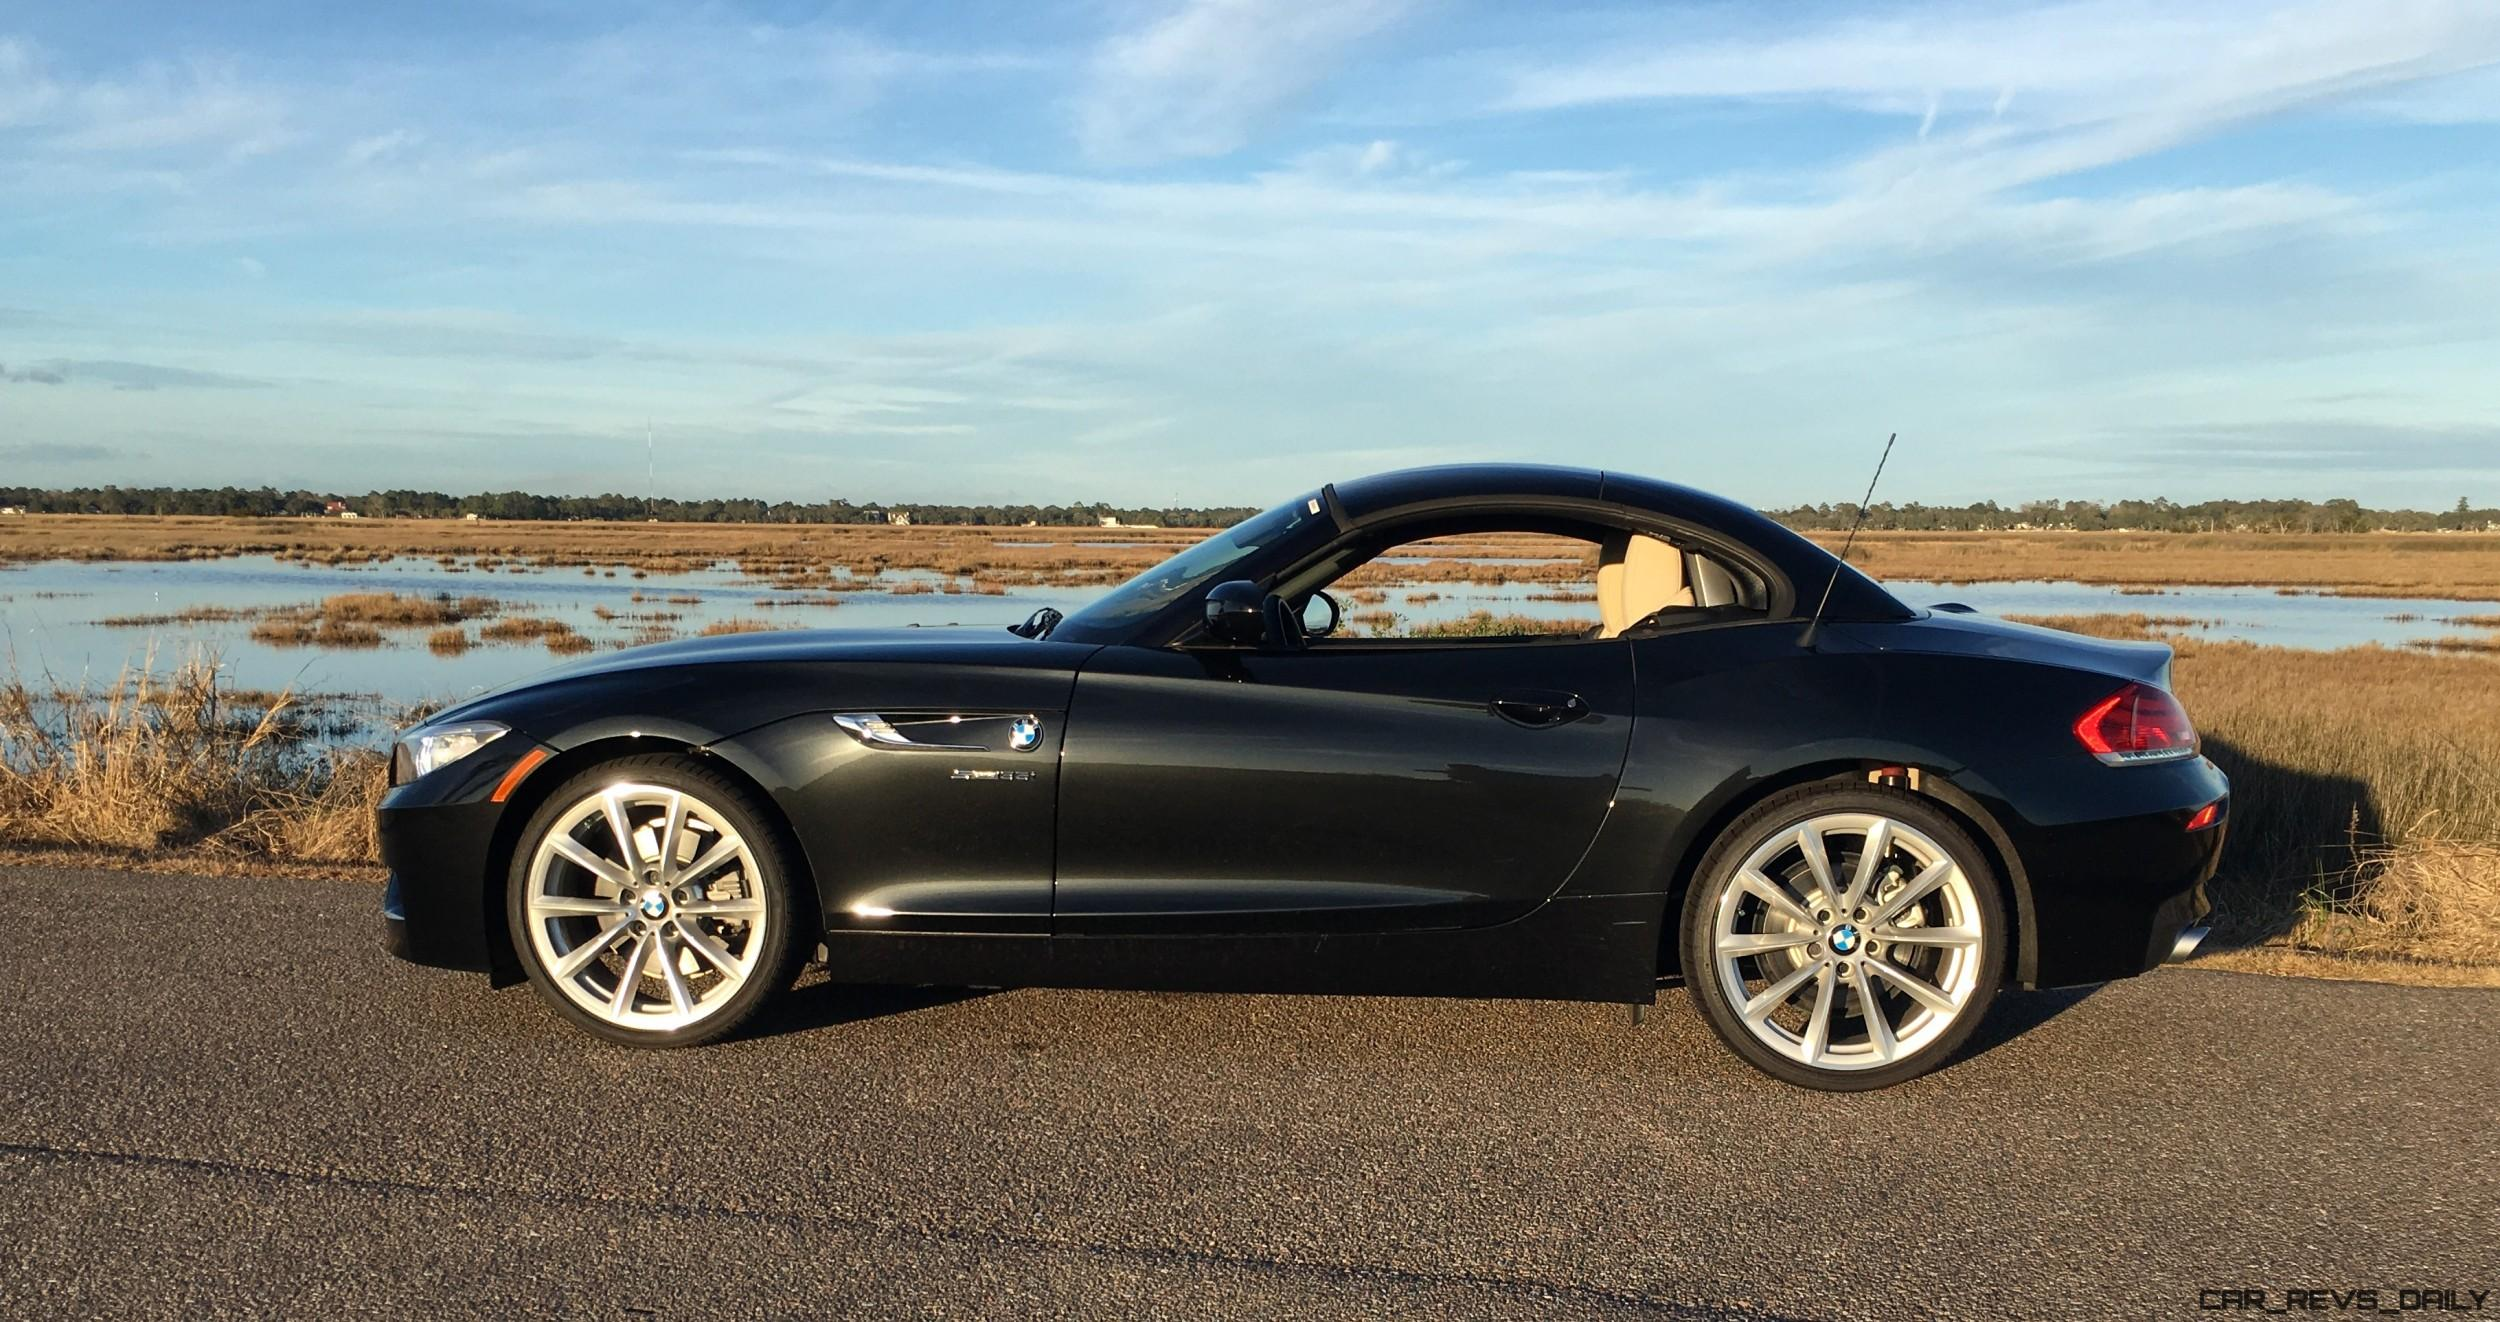 2016 Bmw Z4 M Sport Sdrive35i Hd Walkaround Obituary